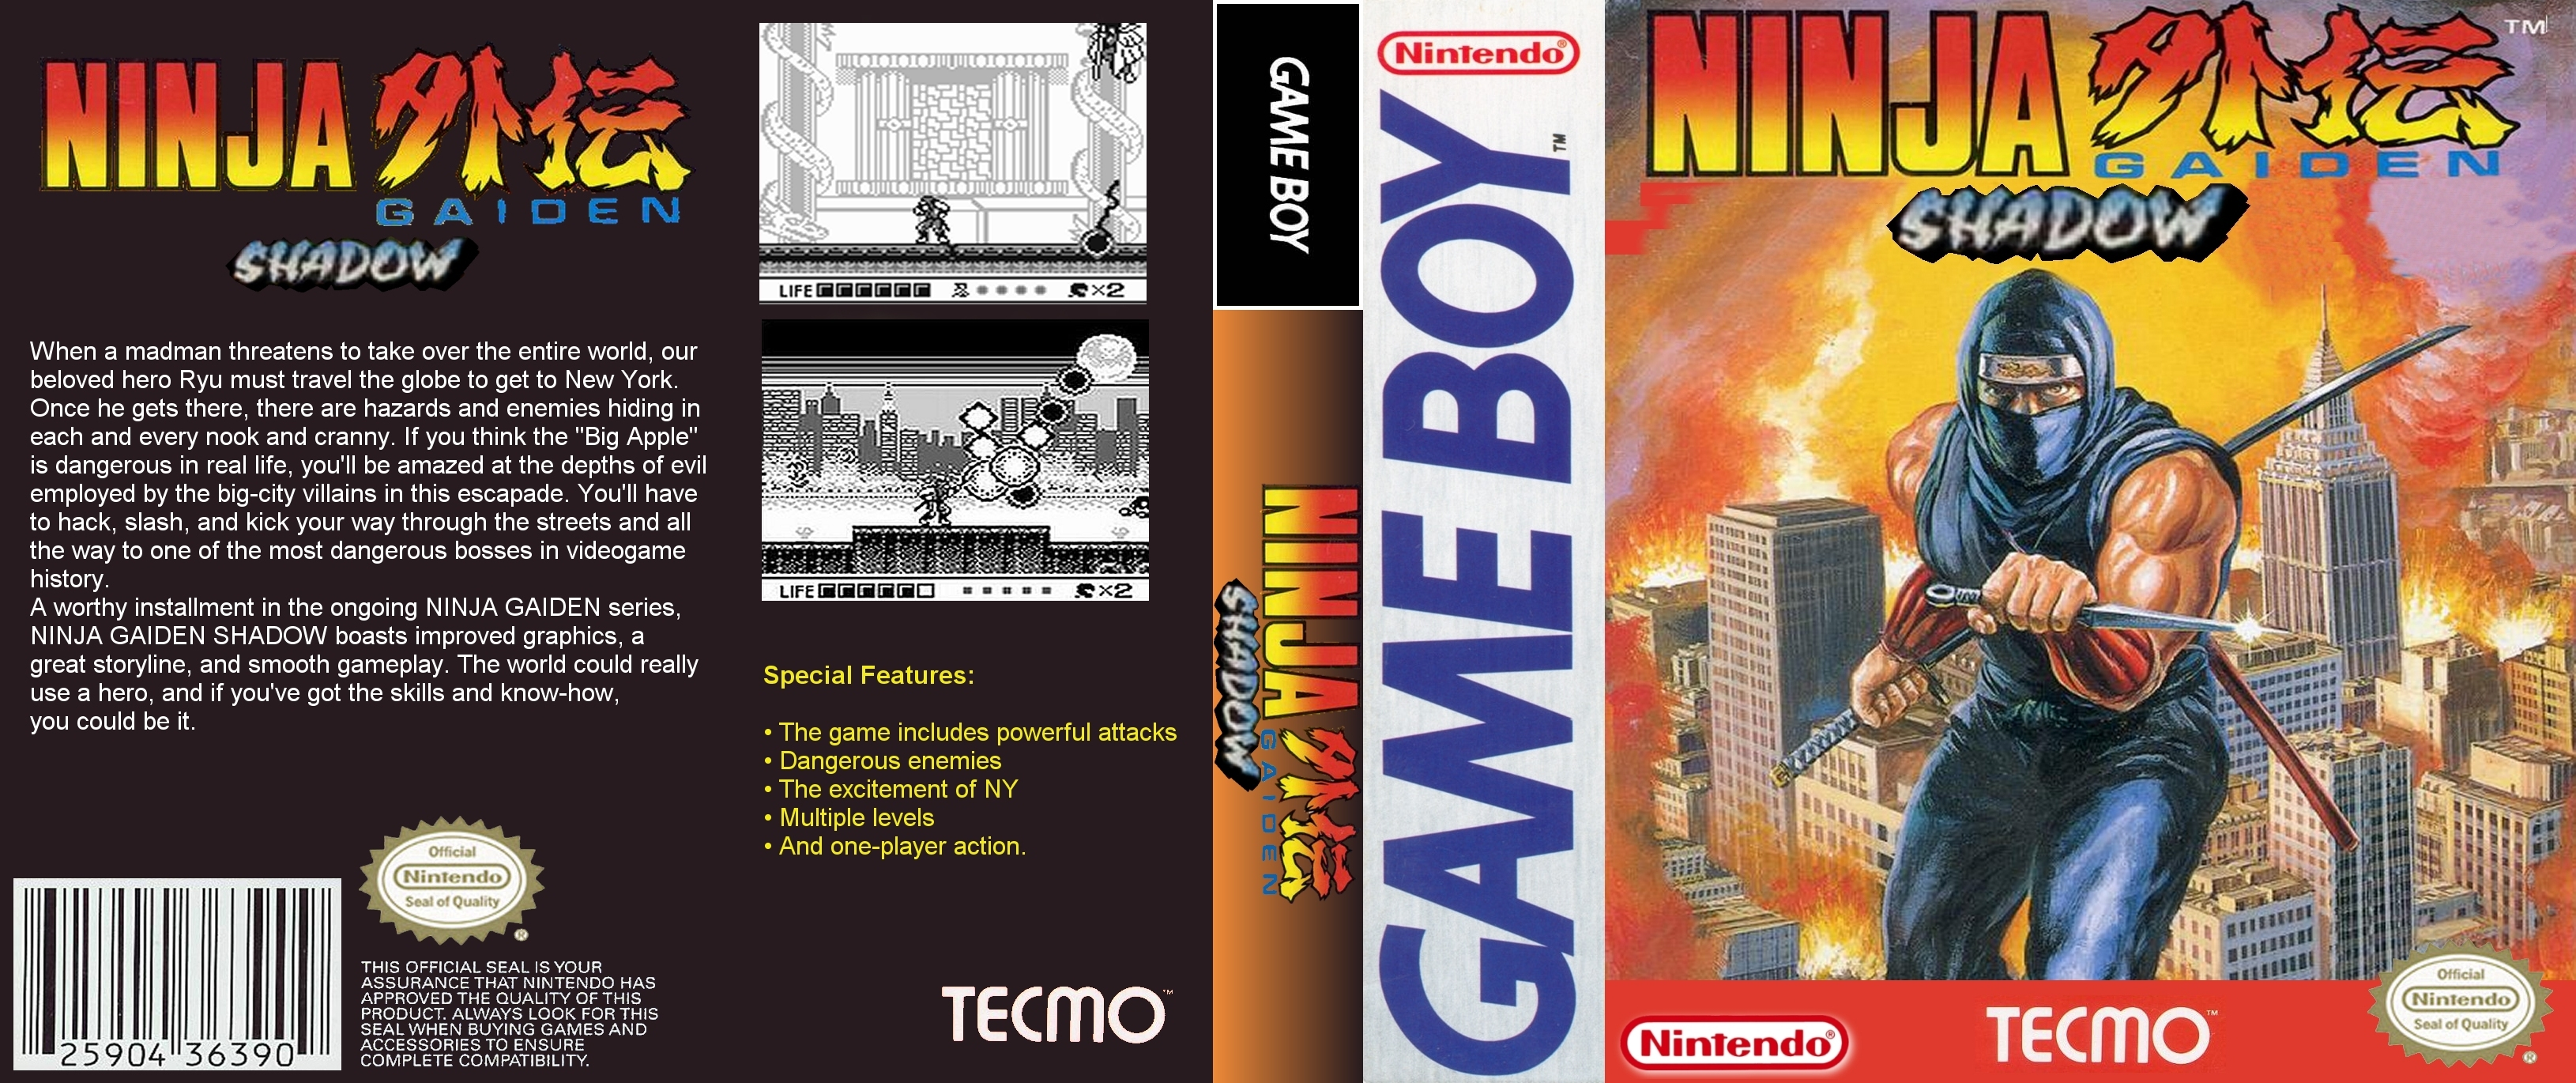 Ninja Gaiden Shadow Gameboy Covers Cover Century Over 500 000 Album Art Covers For Free